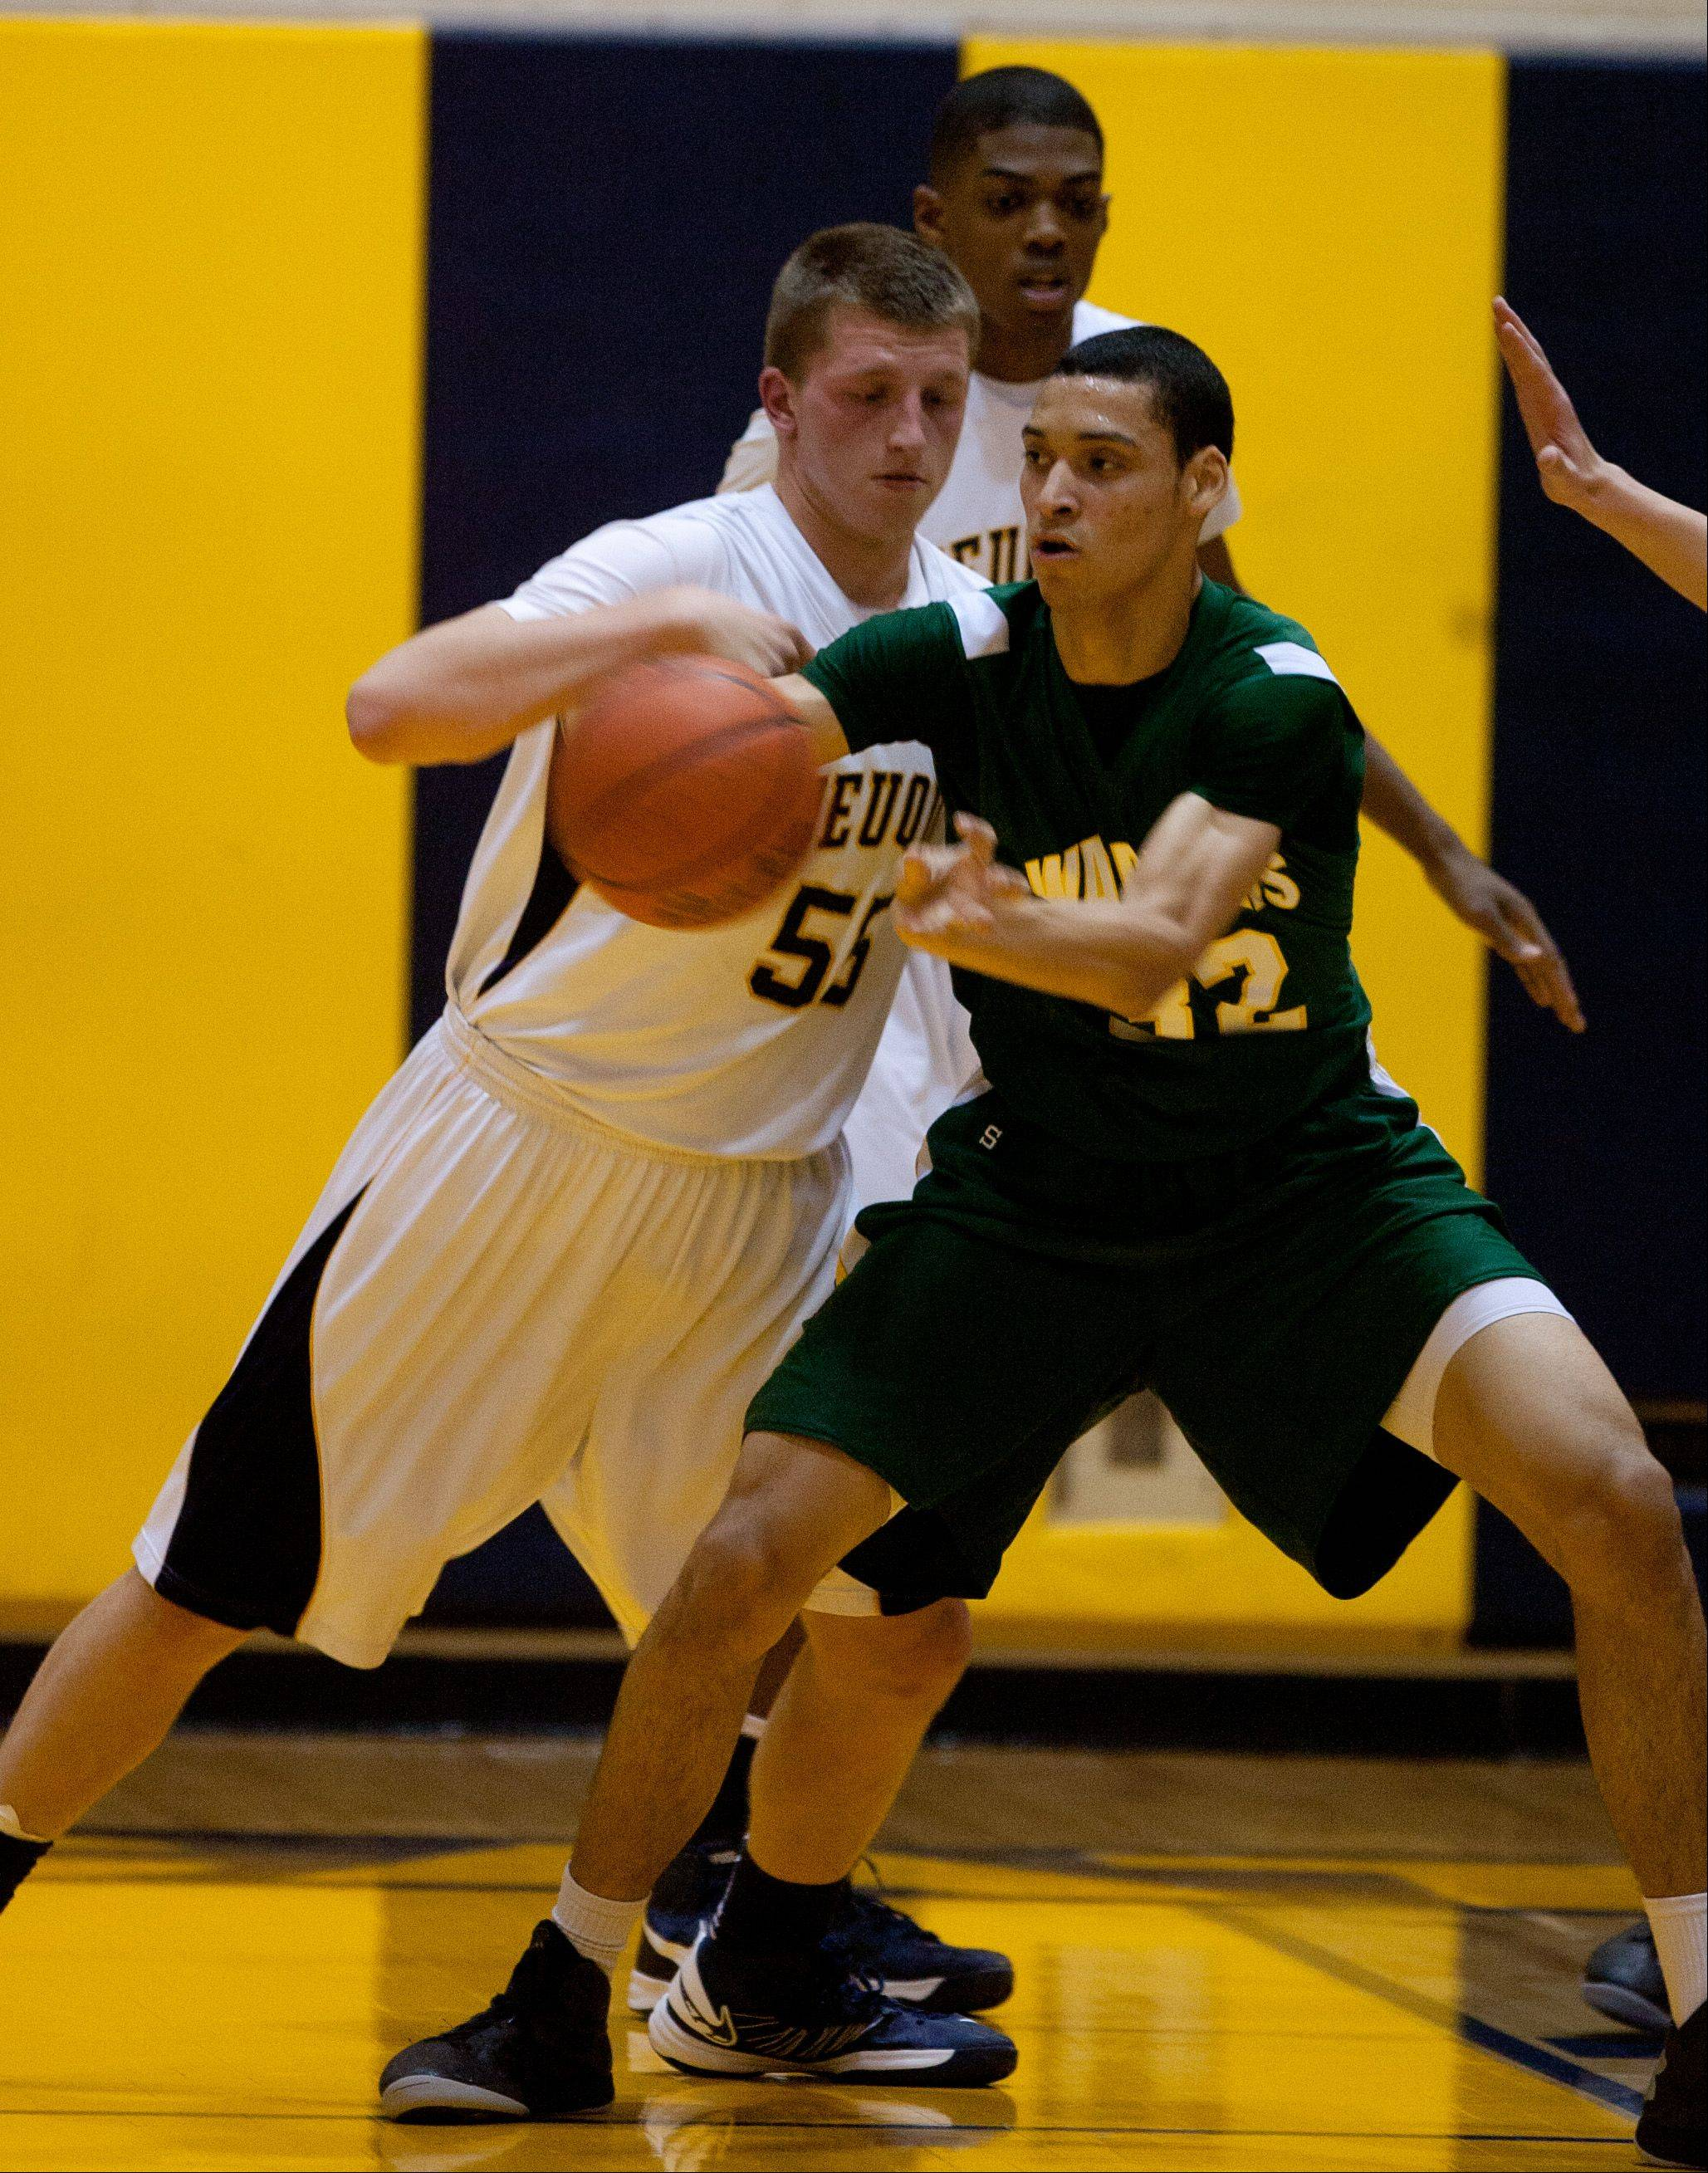 Neuqua Valley hosted Waubonsie Valley Friday night for boys basketball.